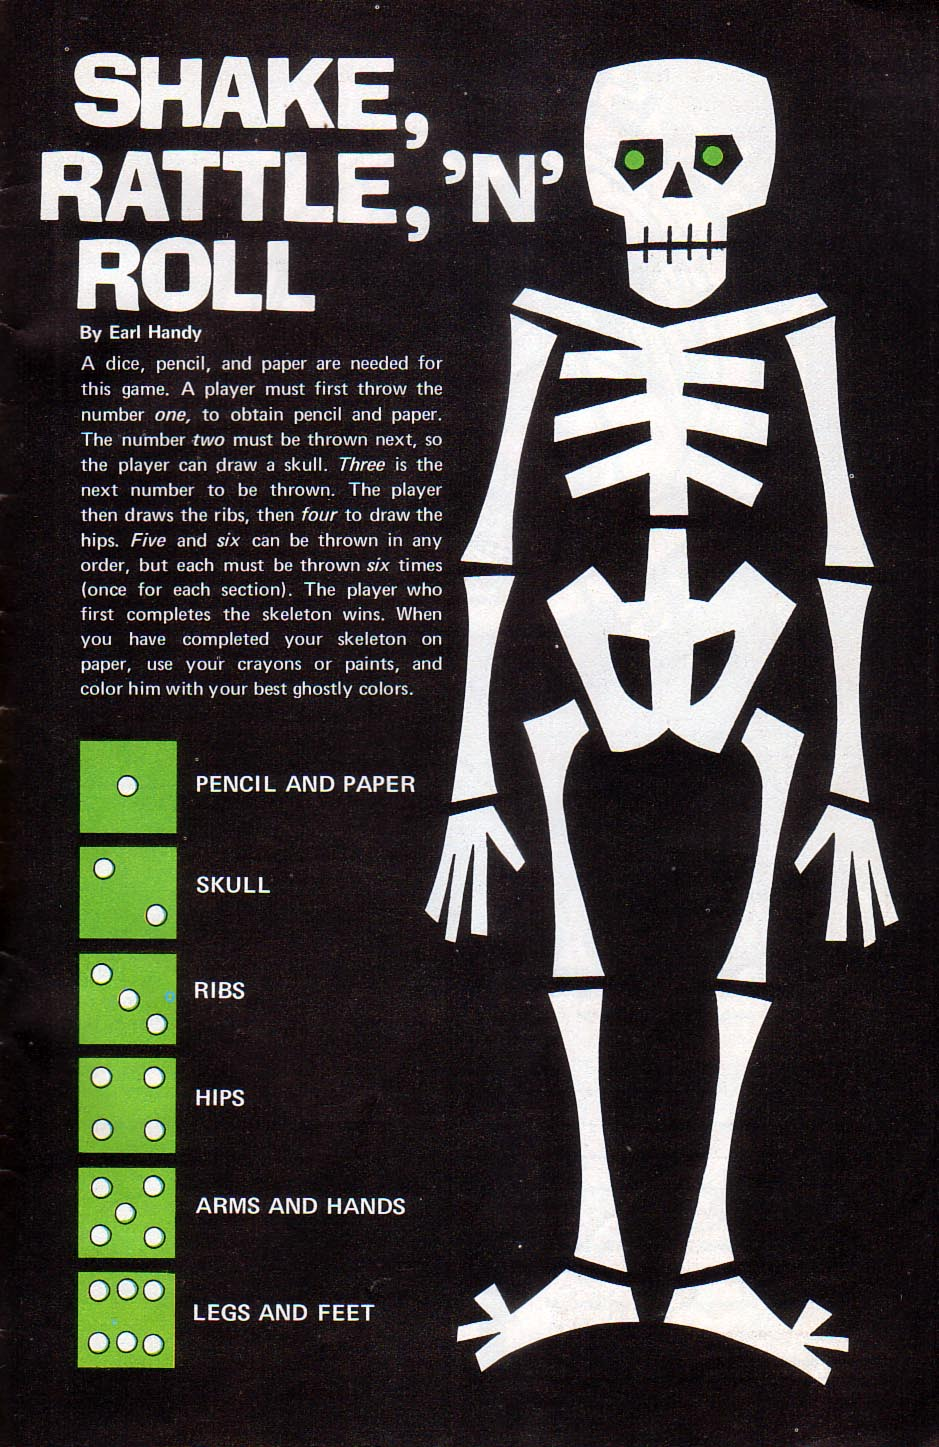 Shake Rattle And Roll | Skeleton / Dice game